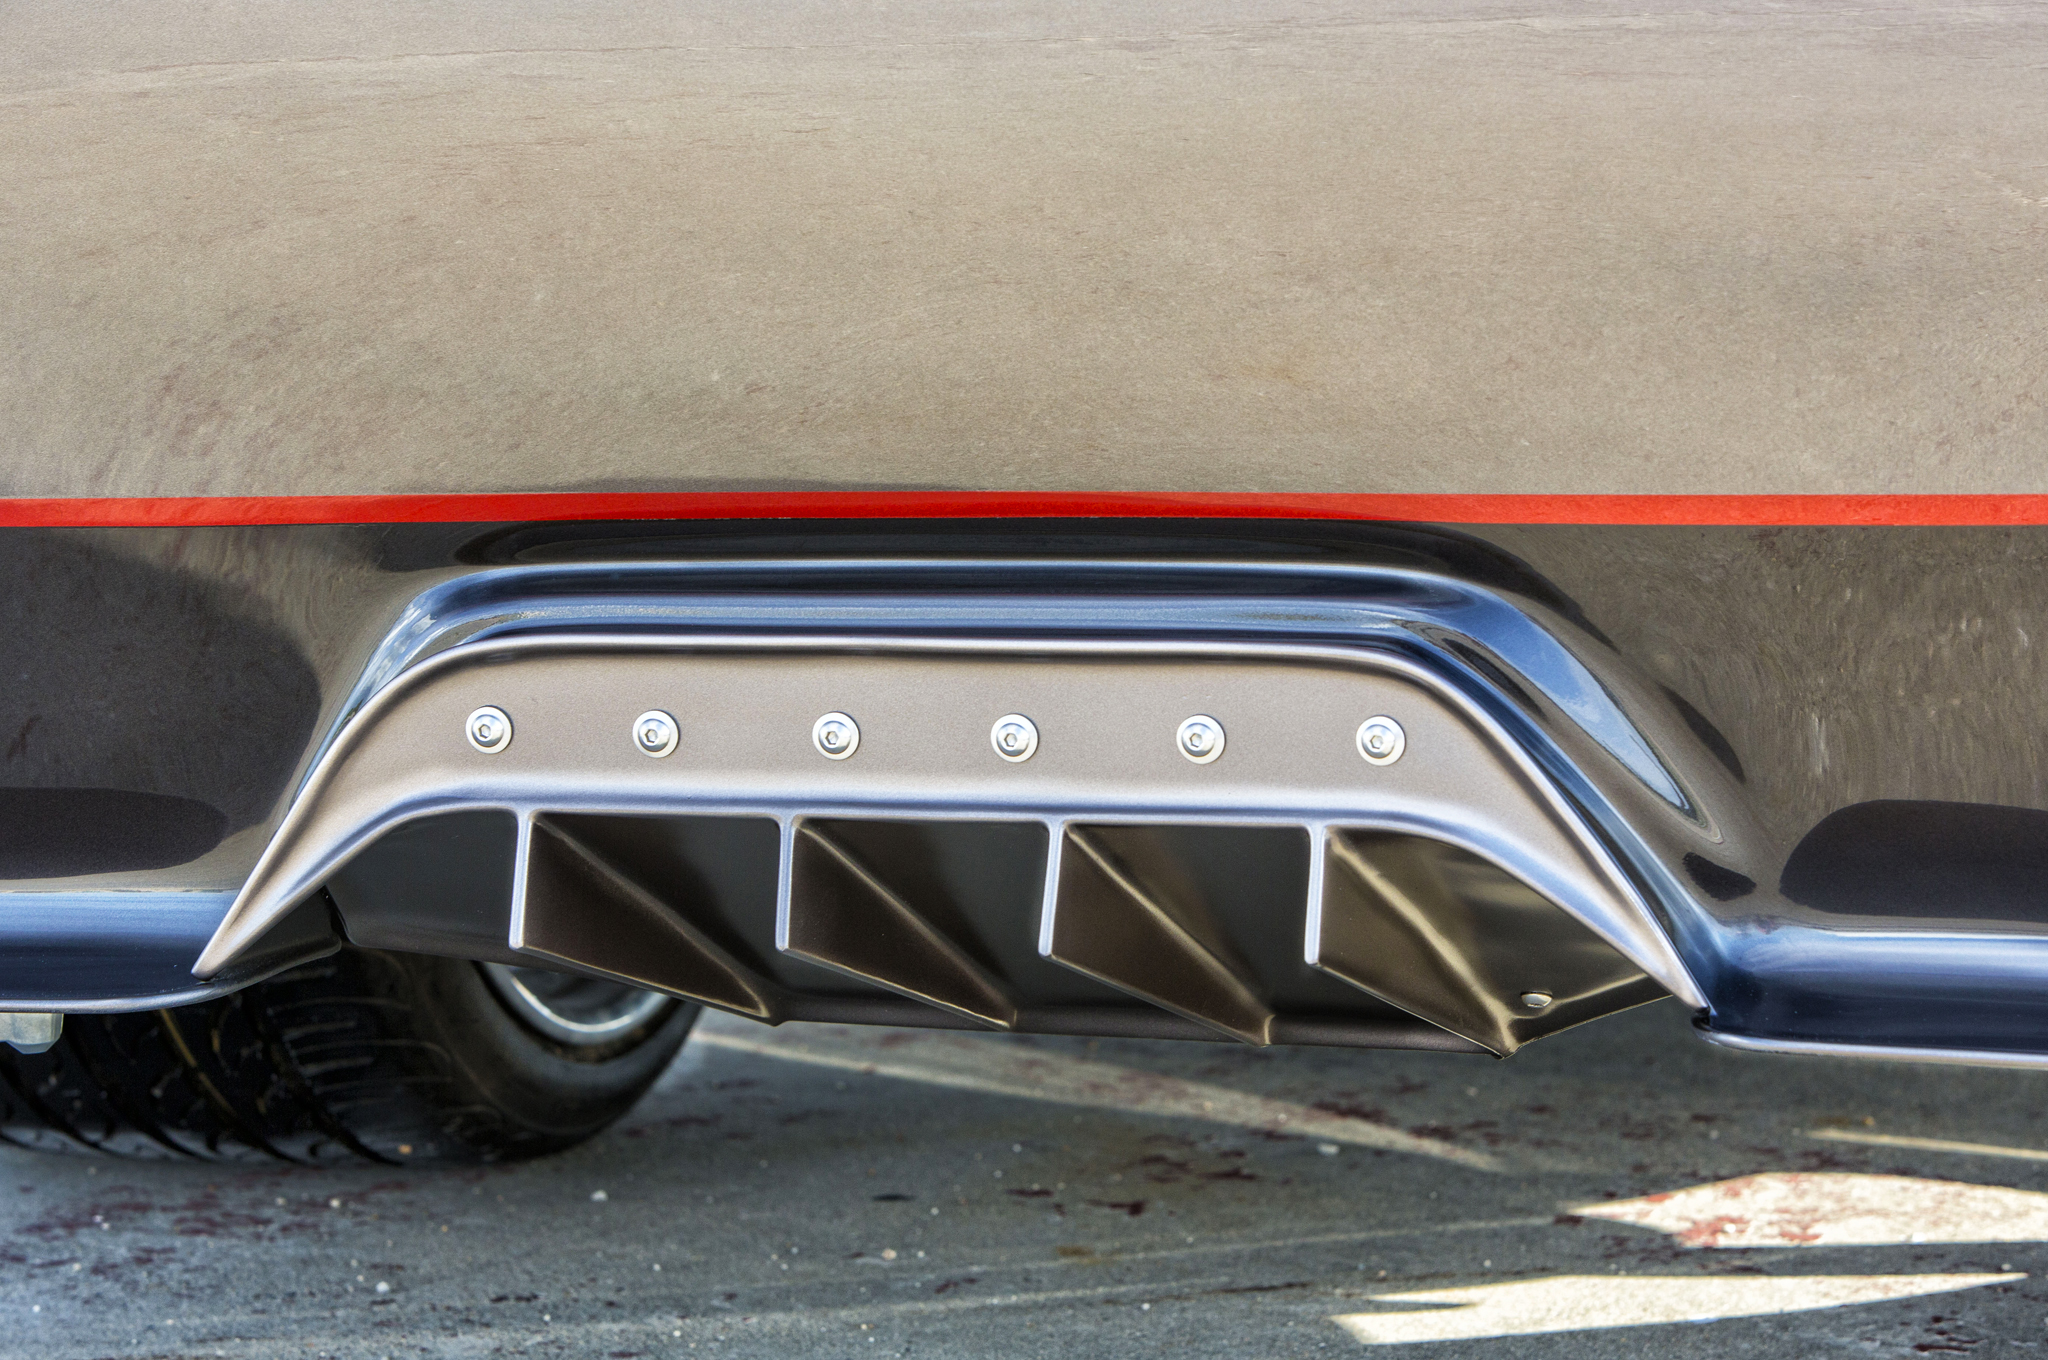 On a factory F-100, this is where you'd find the license plate, but Weaver Customs fabricated a diffuser to match the truck's racy new look.